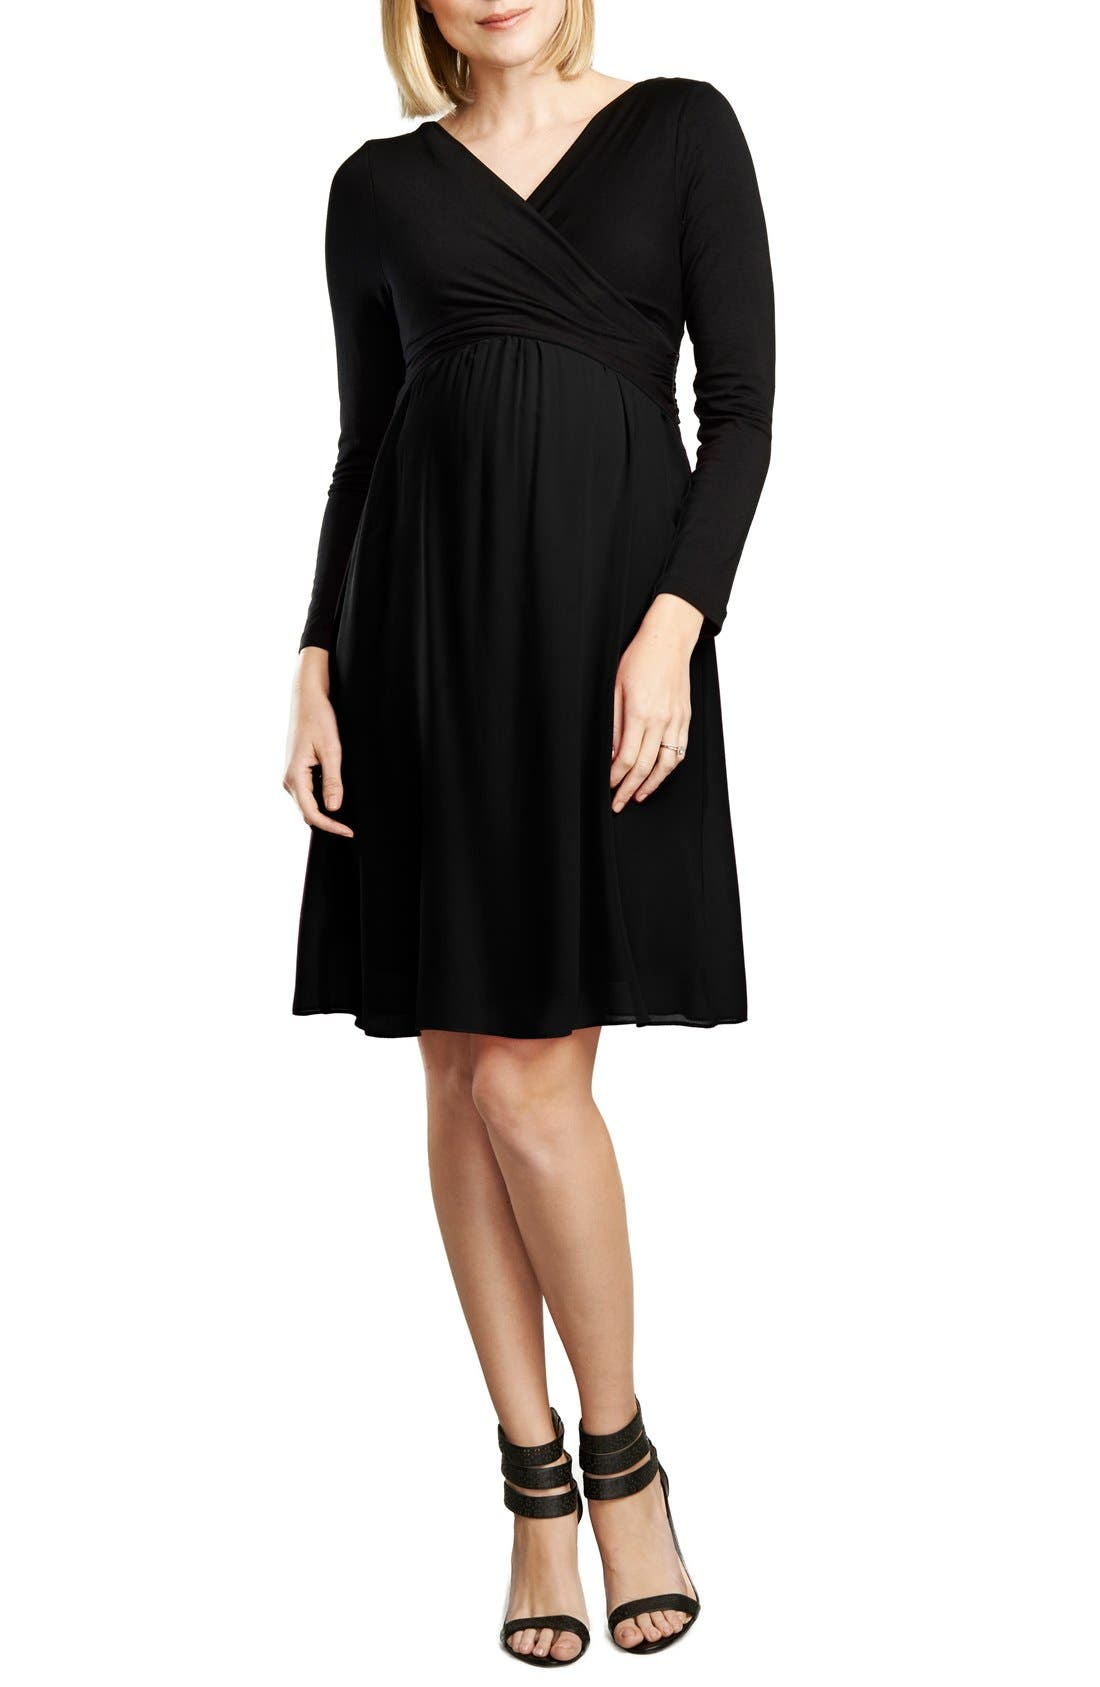 MATERNAL AMERICA Crossover Maternity Dress, Main, color, BLACK/BLACK